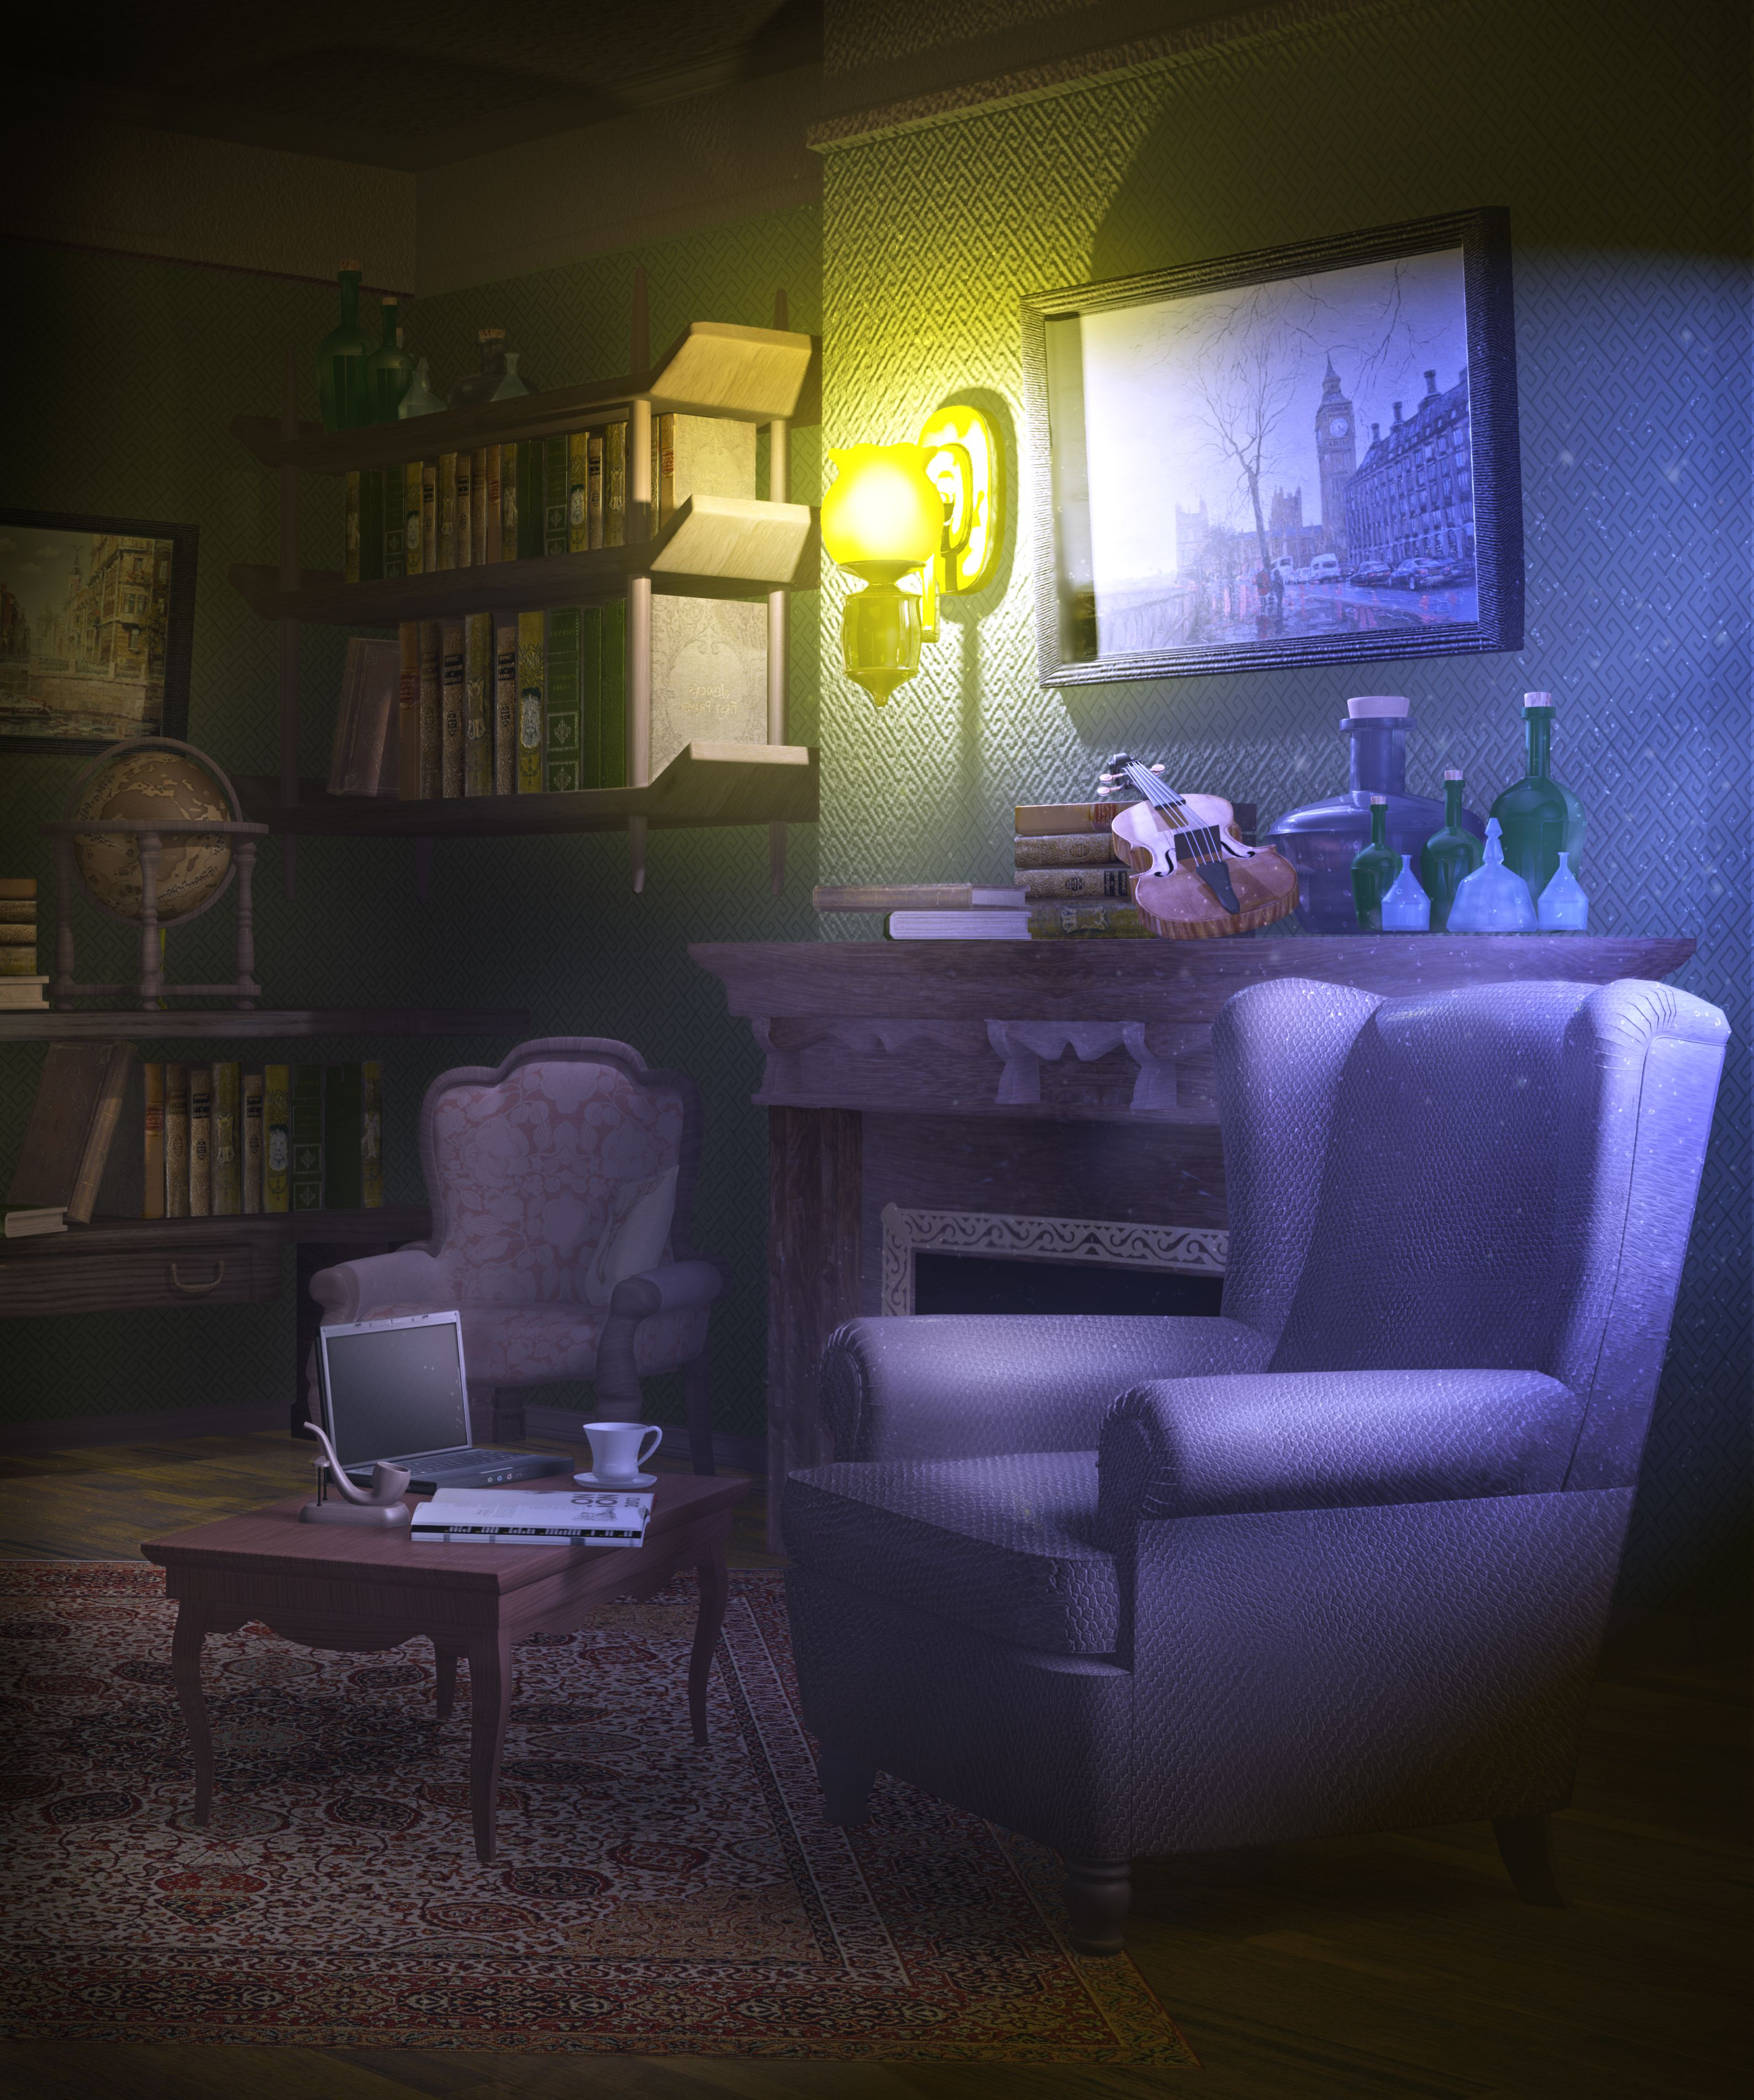 Living Room Background Animated: Room By FadeOut_maya,photoshop